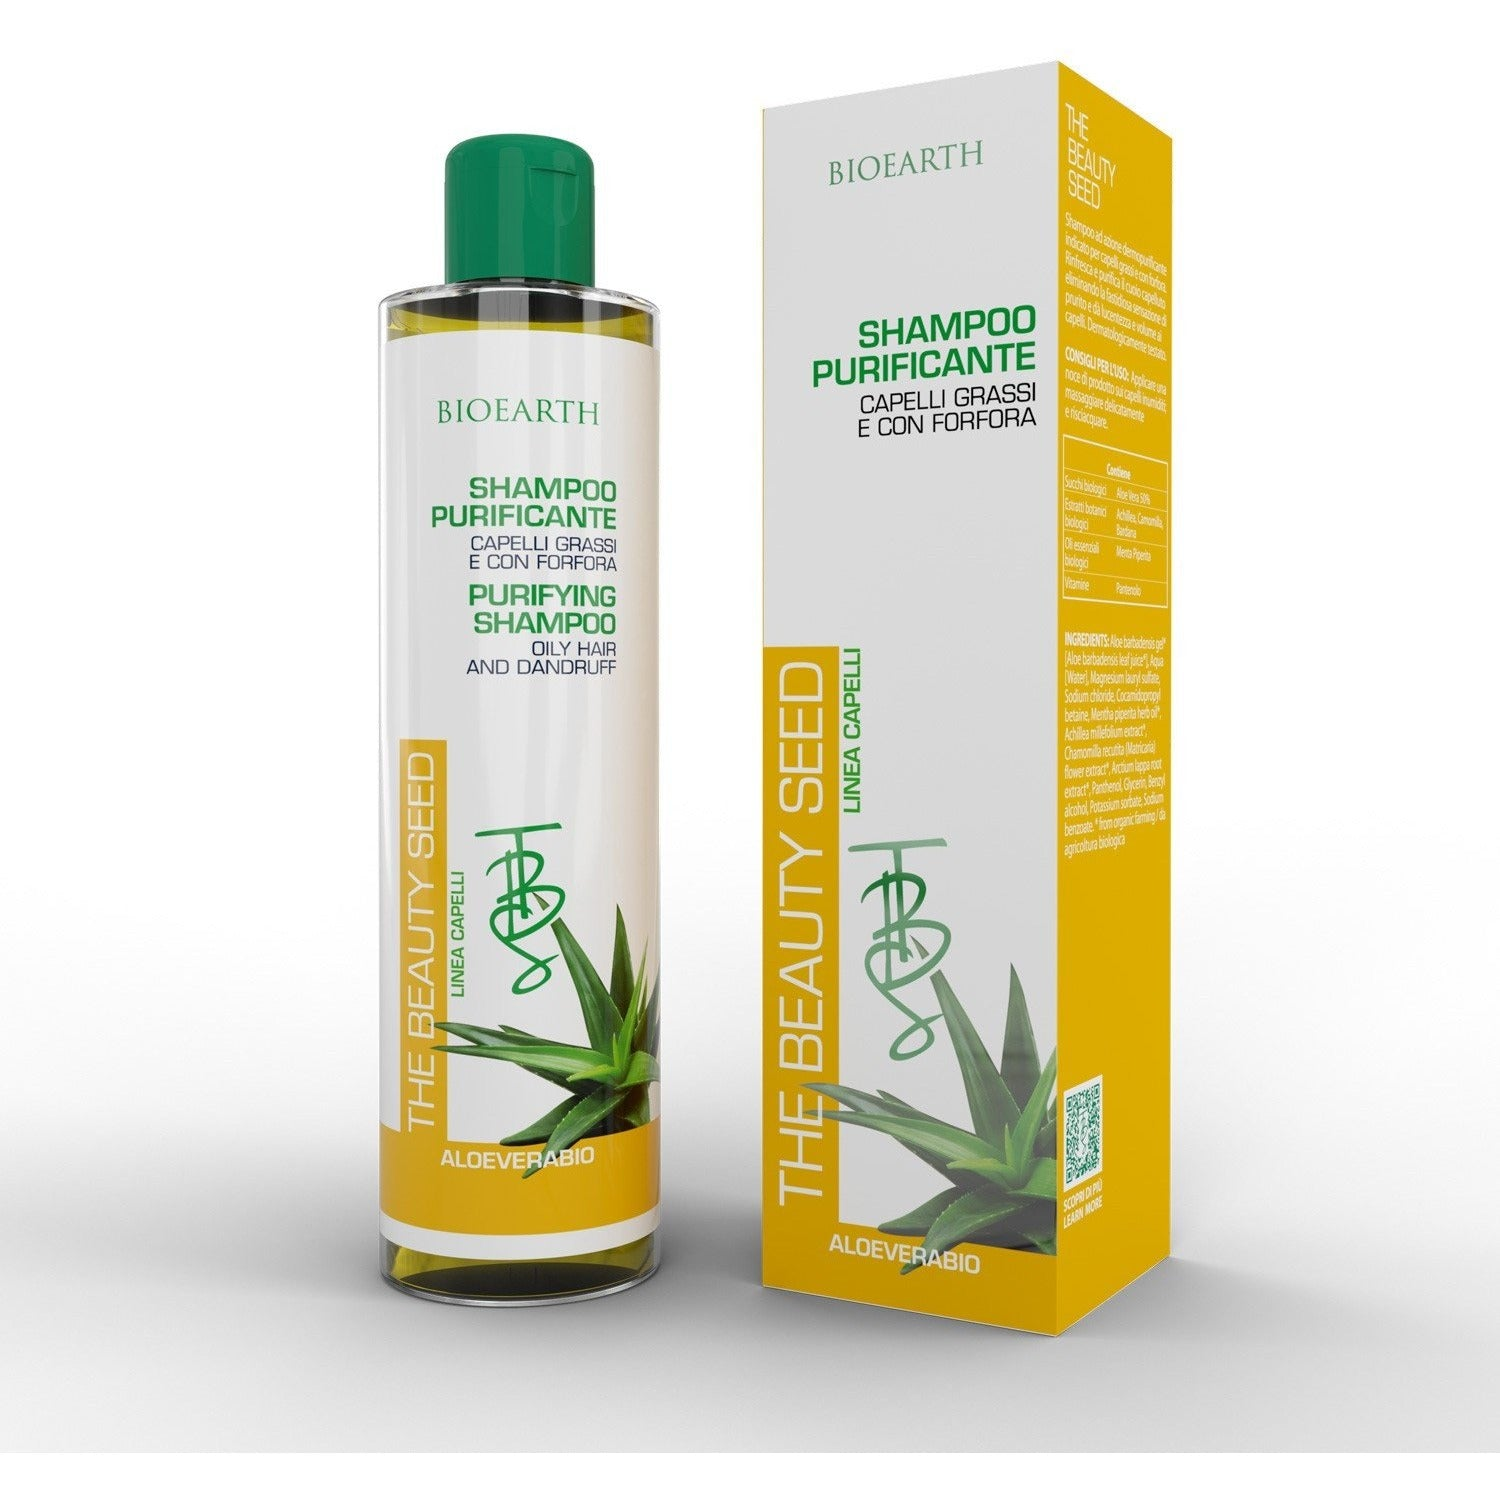 Shampoo Purificante Bioearth - BellaNaturale Bioprofumeria